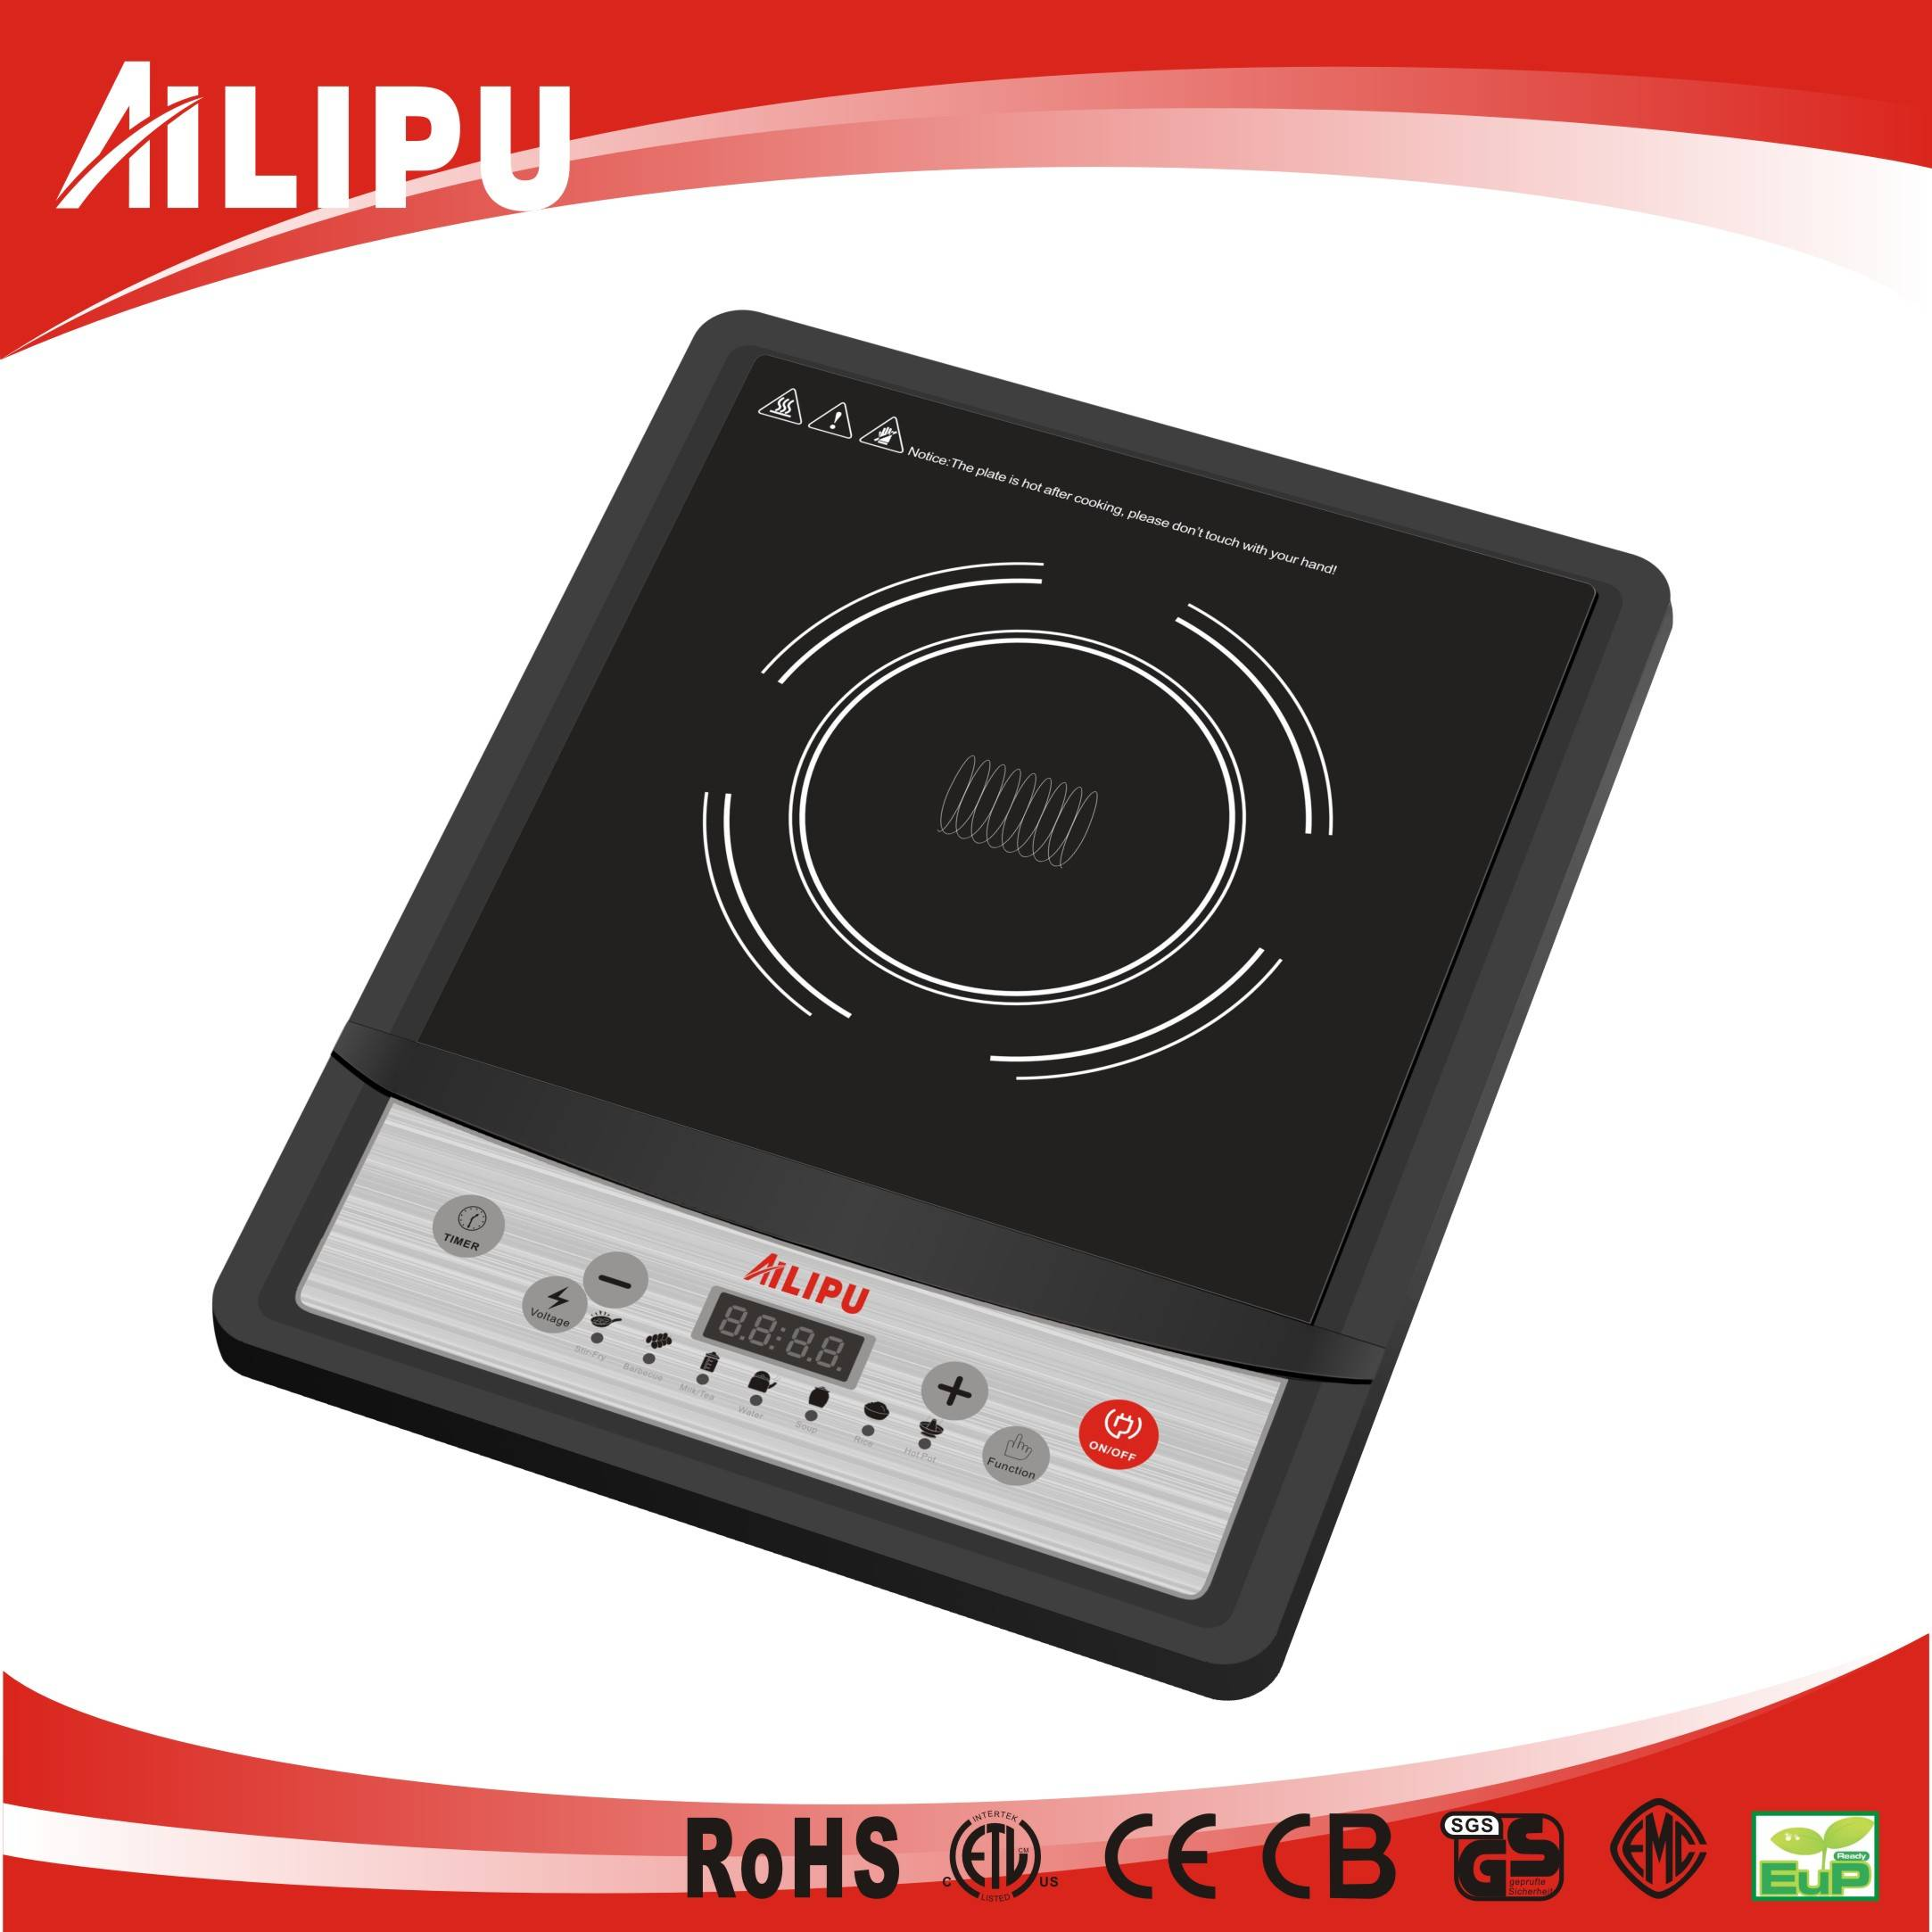 CB/CE Approval Button Control Induction Hot Plate SM-A57